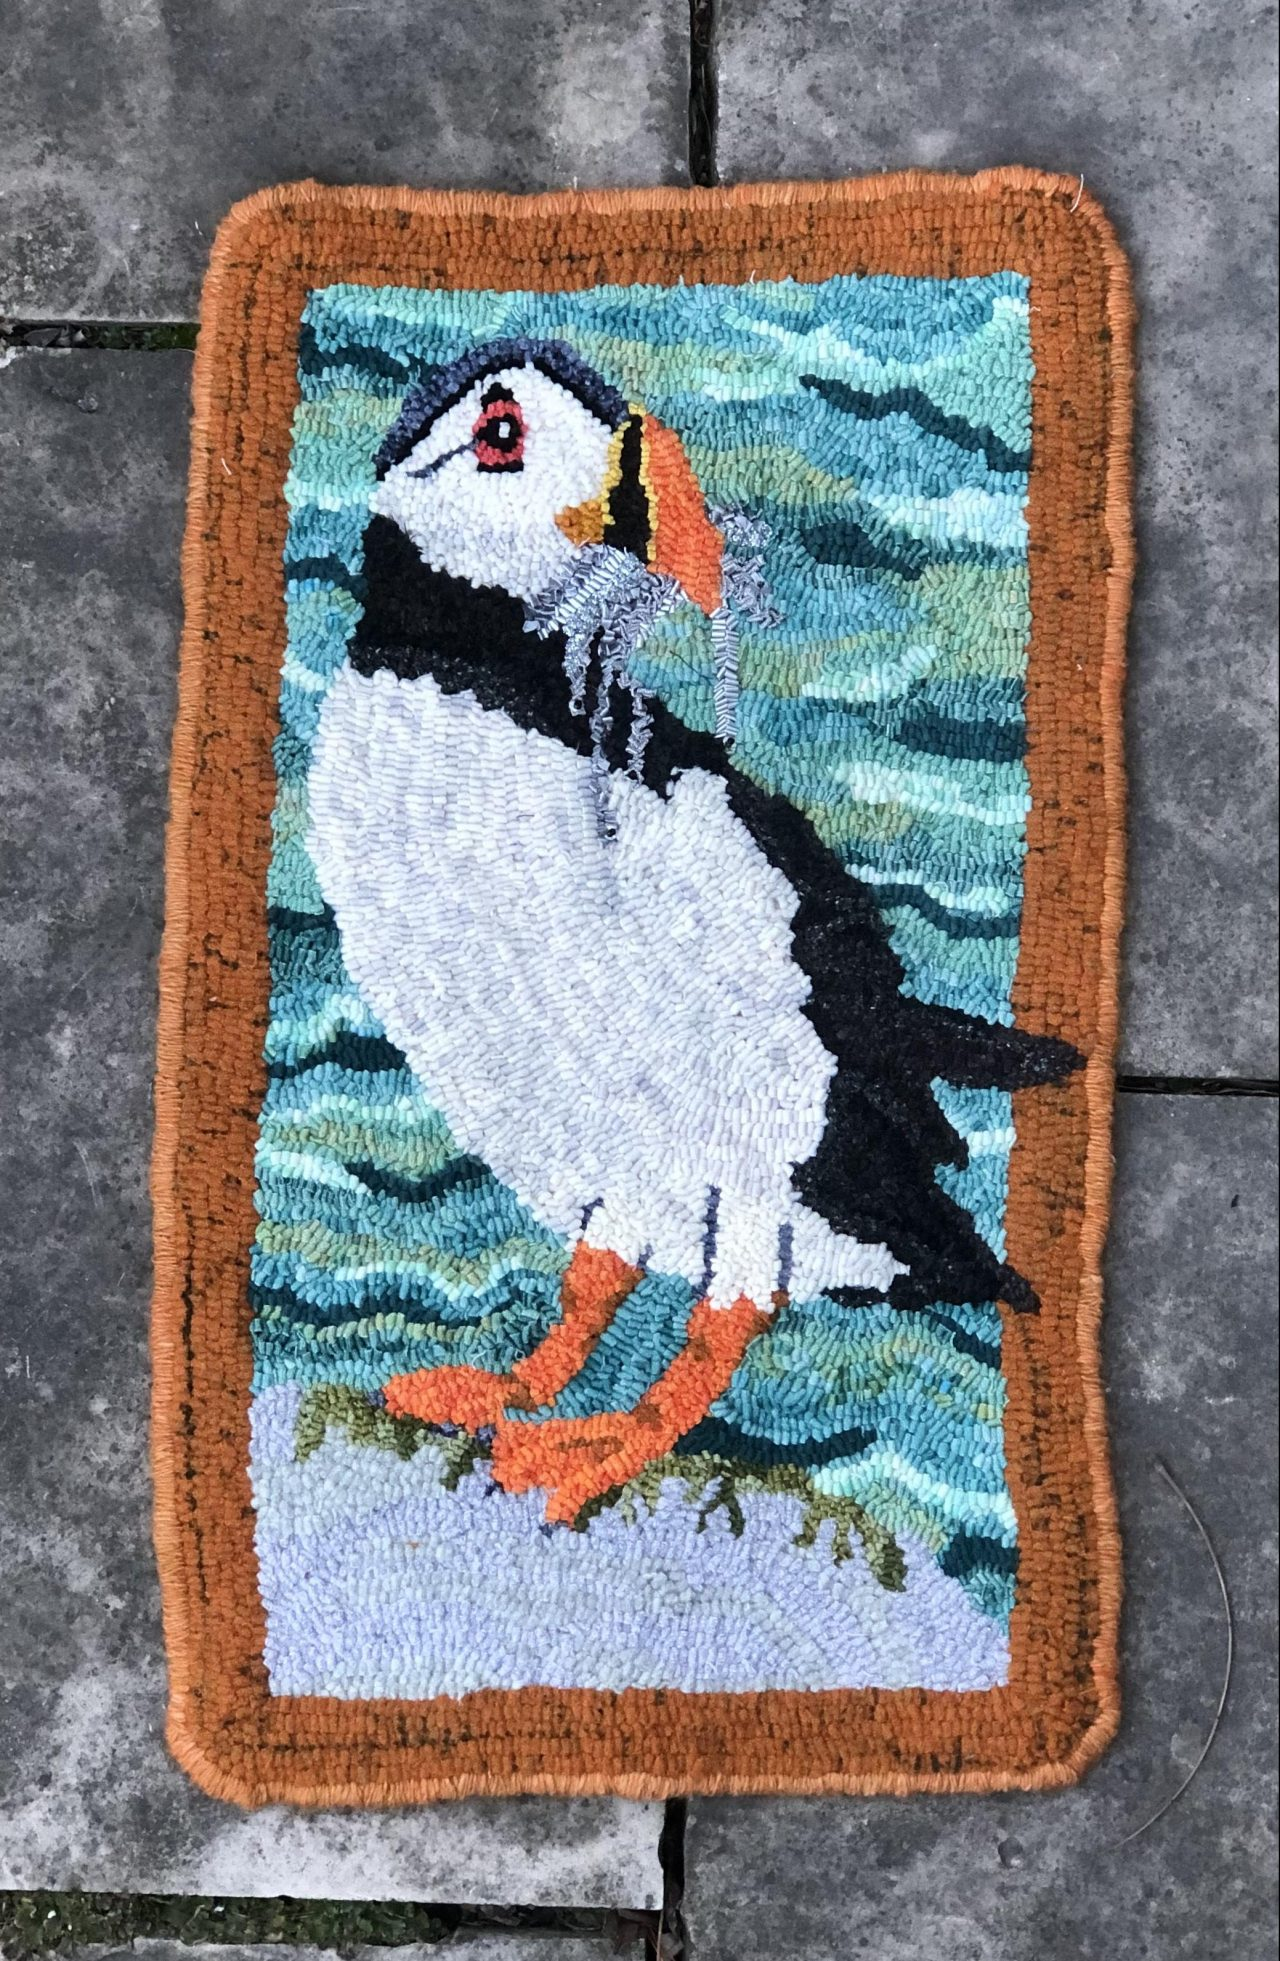 hooked rug art of a puffin with fish in its mouth by Yvonne Iten-Scott